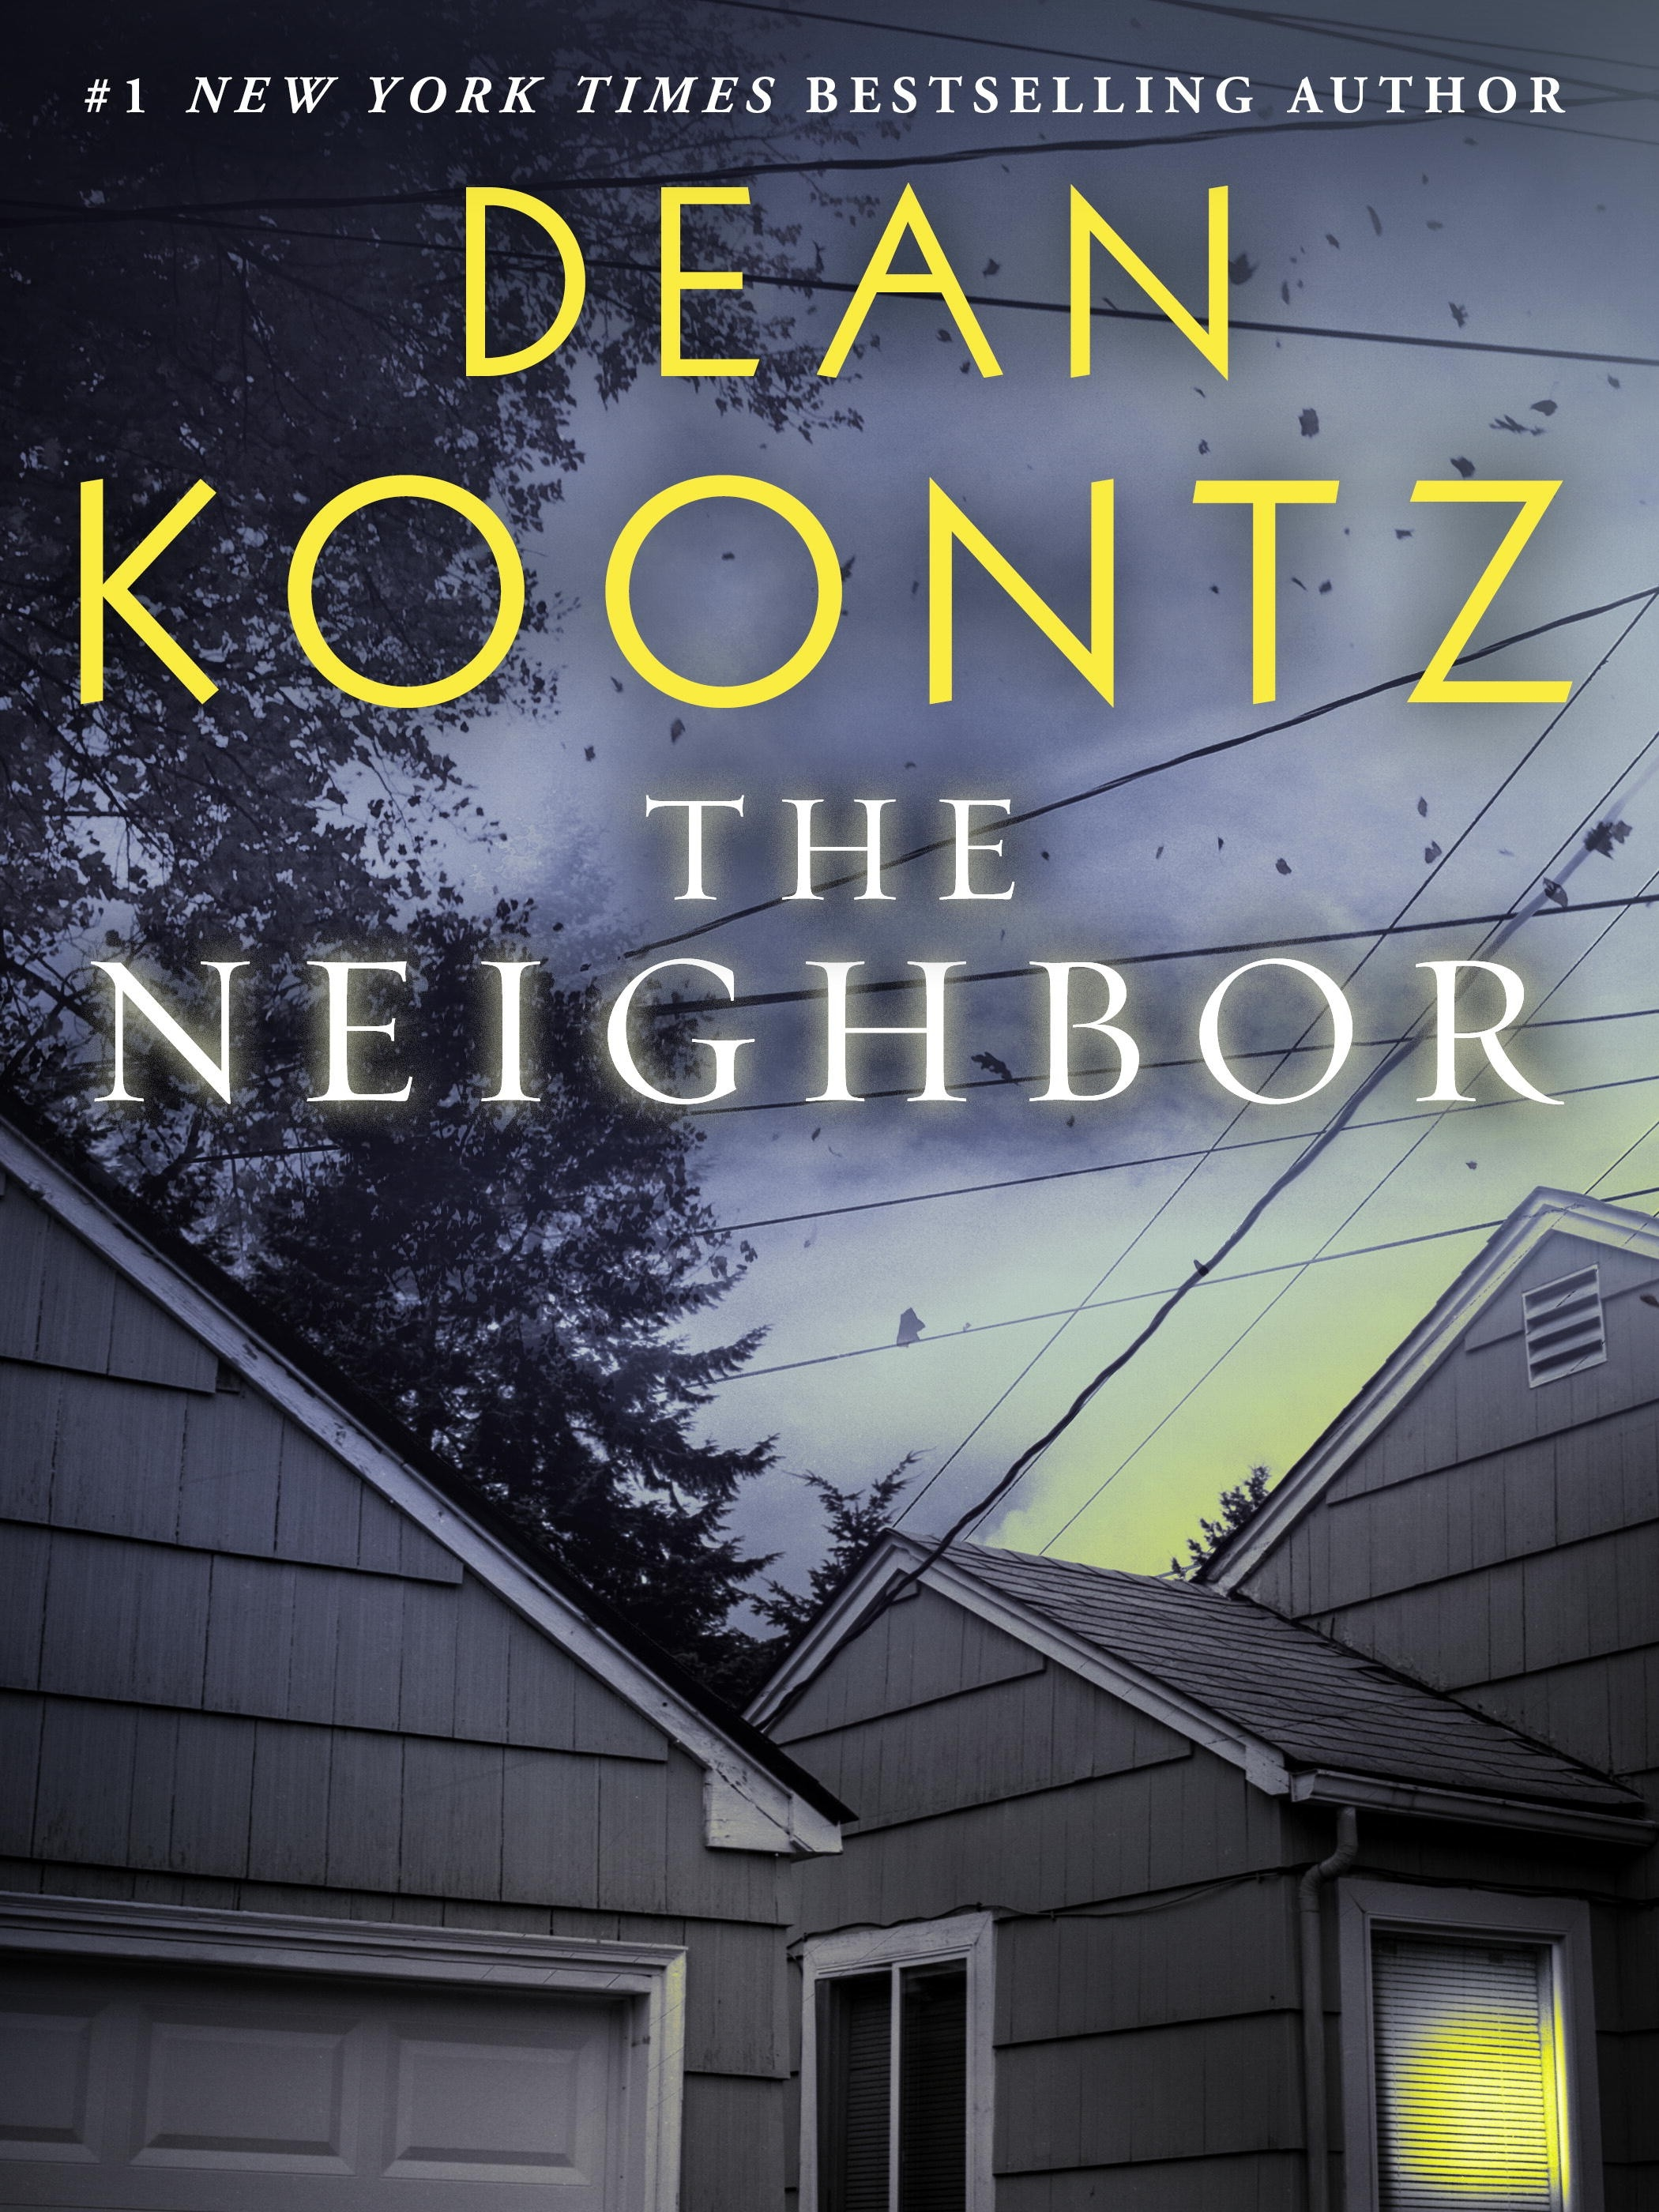 Fiction | Book Series | Dean Koontz with Dean Koontz Book List 38160